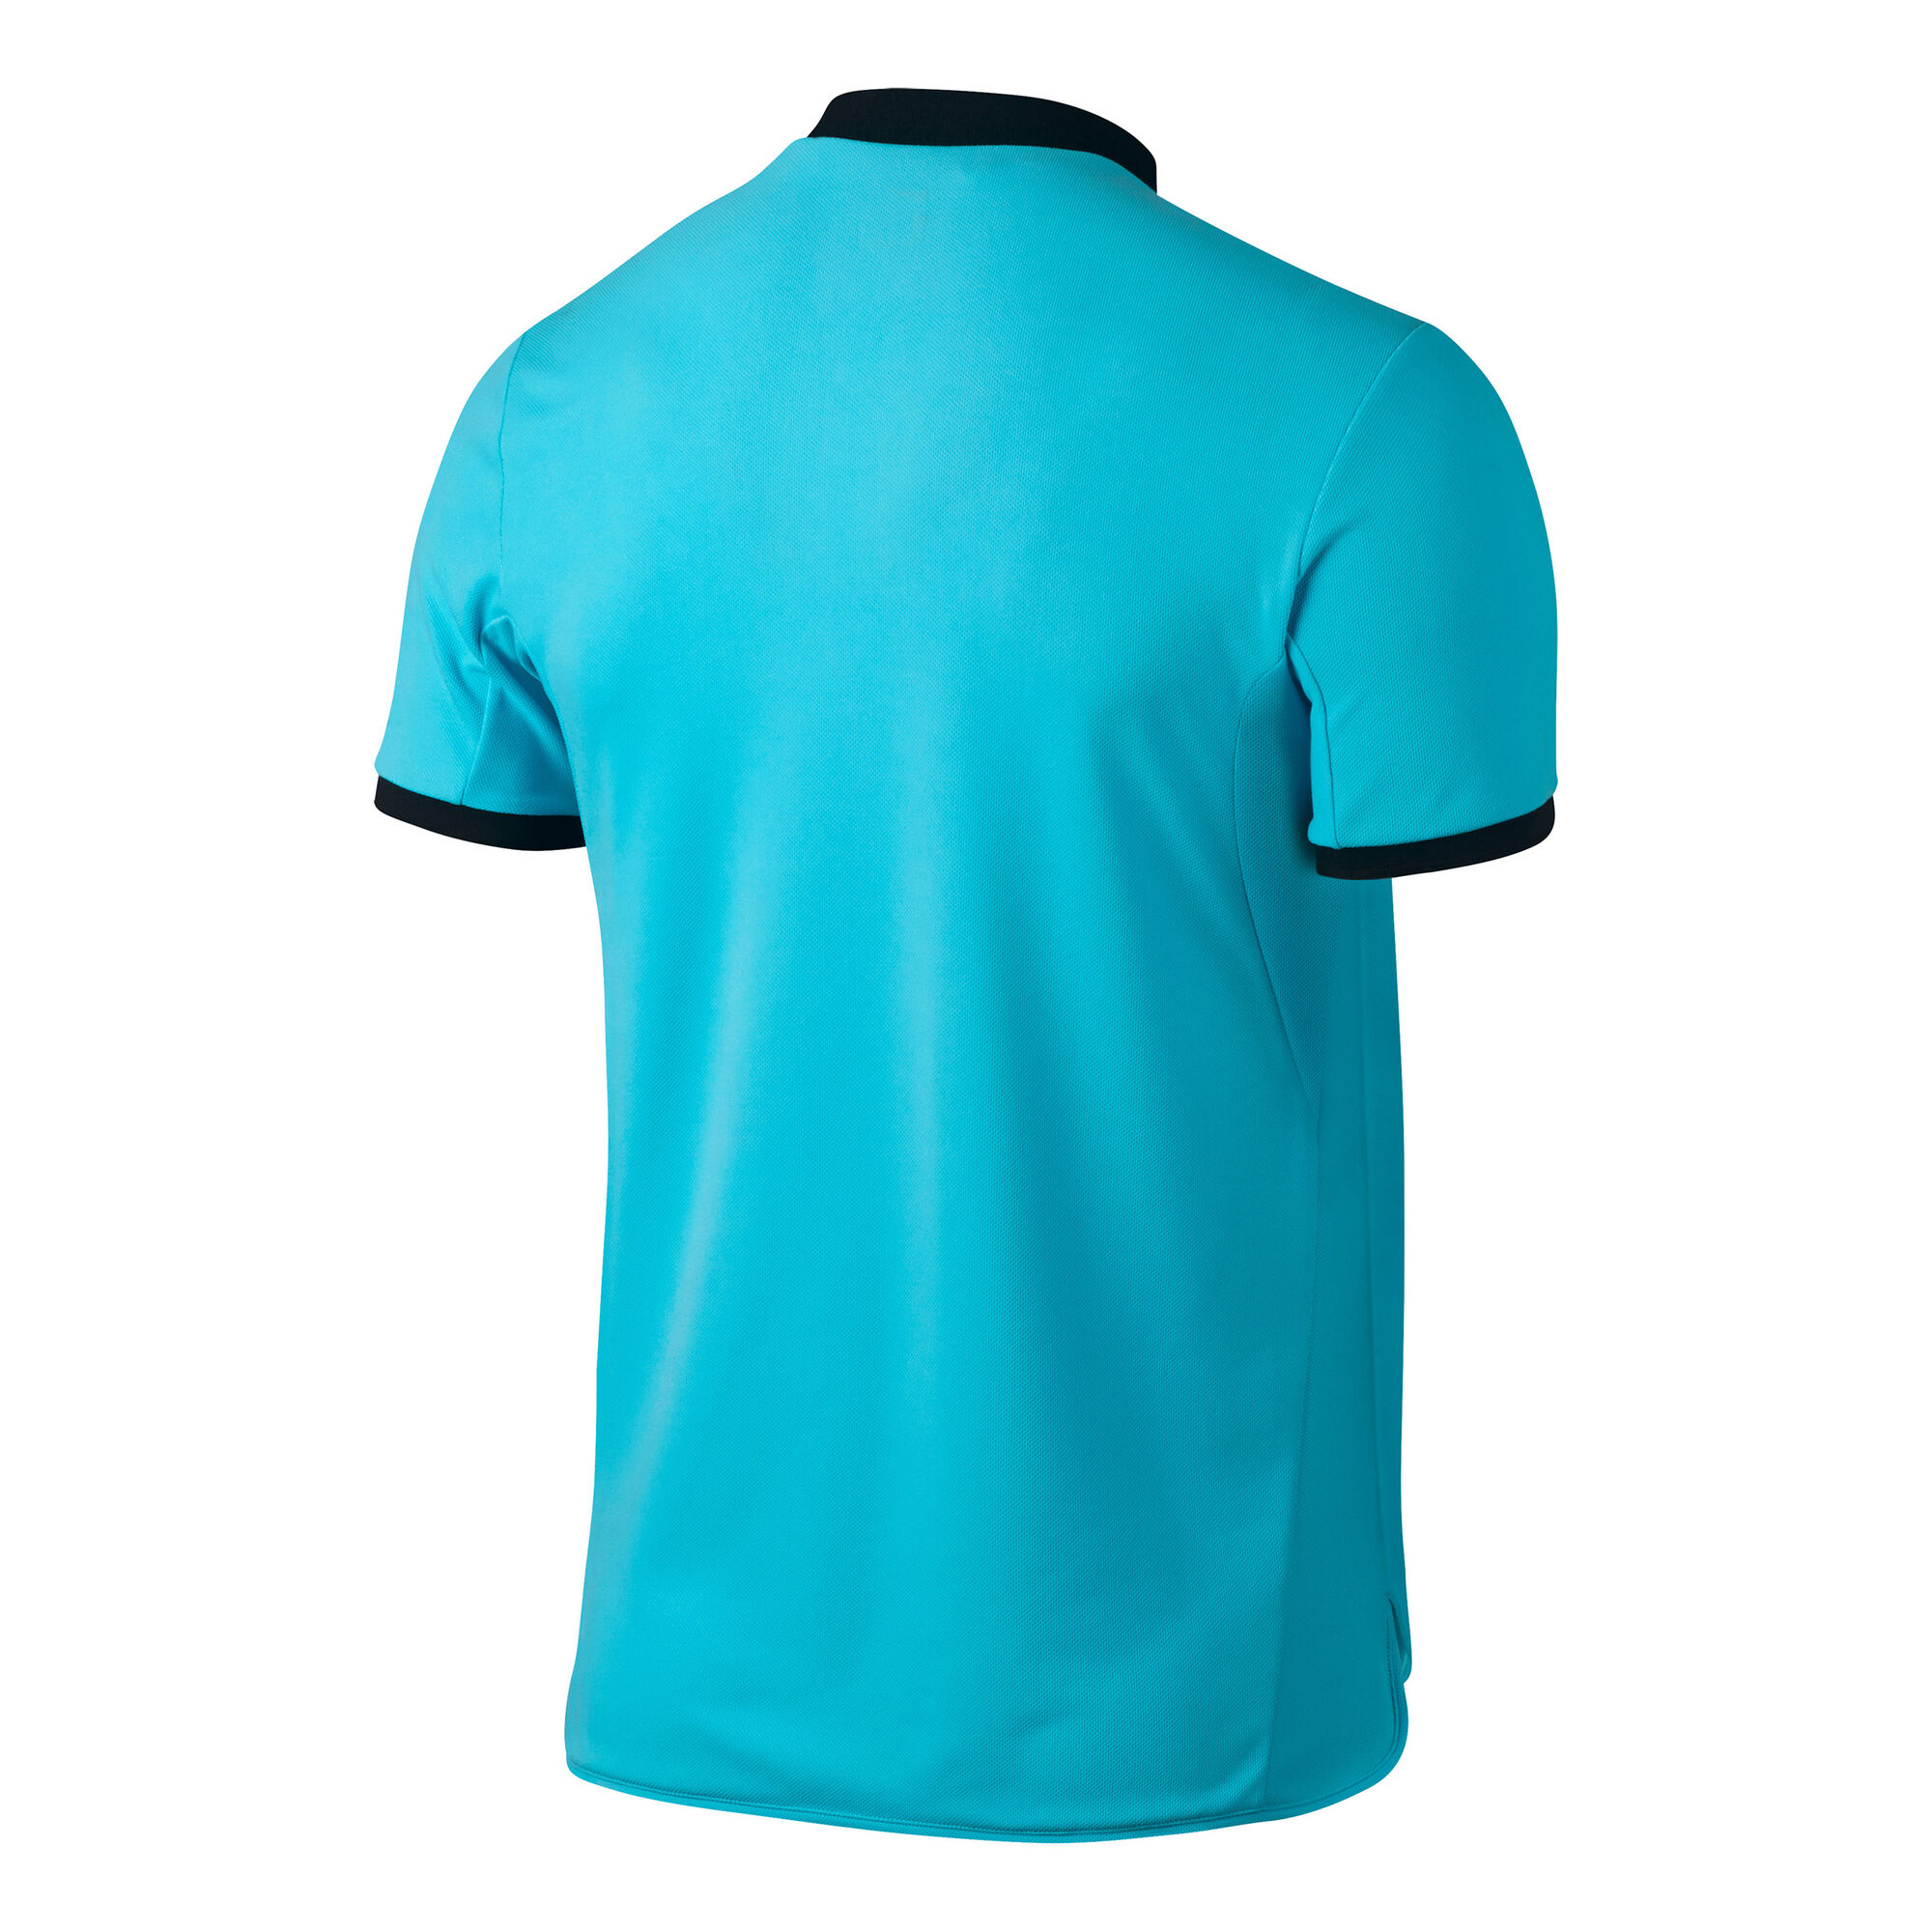 91e961fb42f962 Nike Court Advantage Polo Herren - Blau